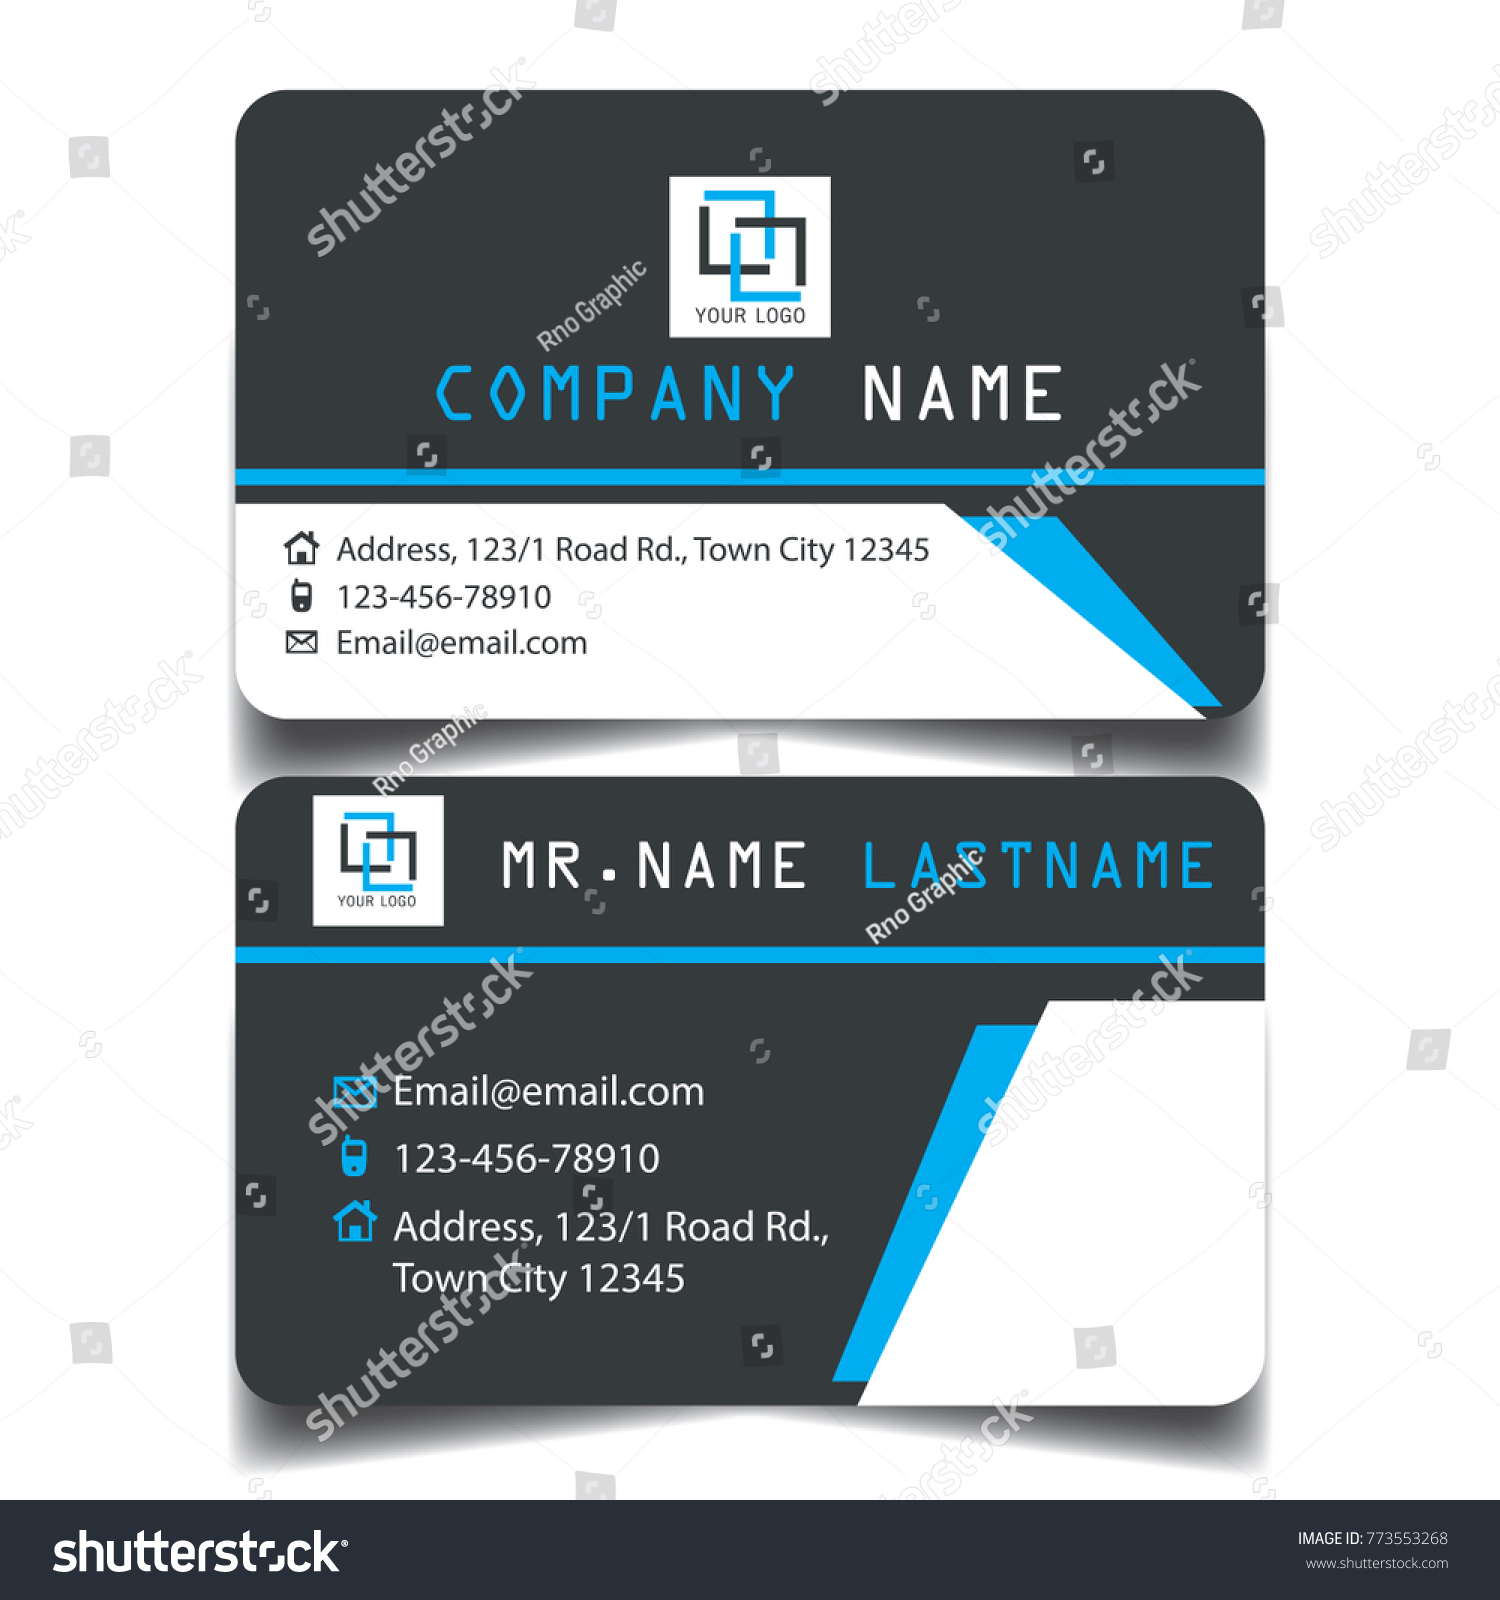 Business cards with photos choice image free business cards vanprint digital printing architectural firm business card with vanprint digital printing architectural magicingreecefo Gallery